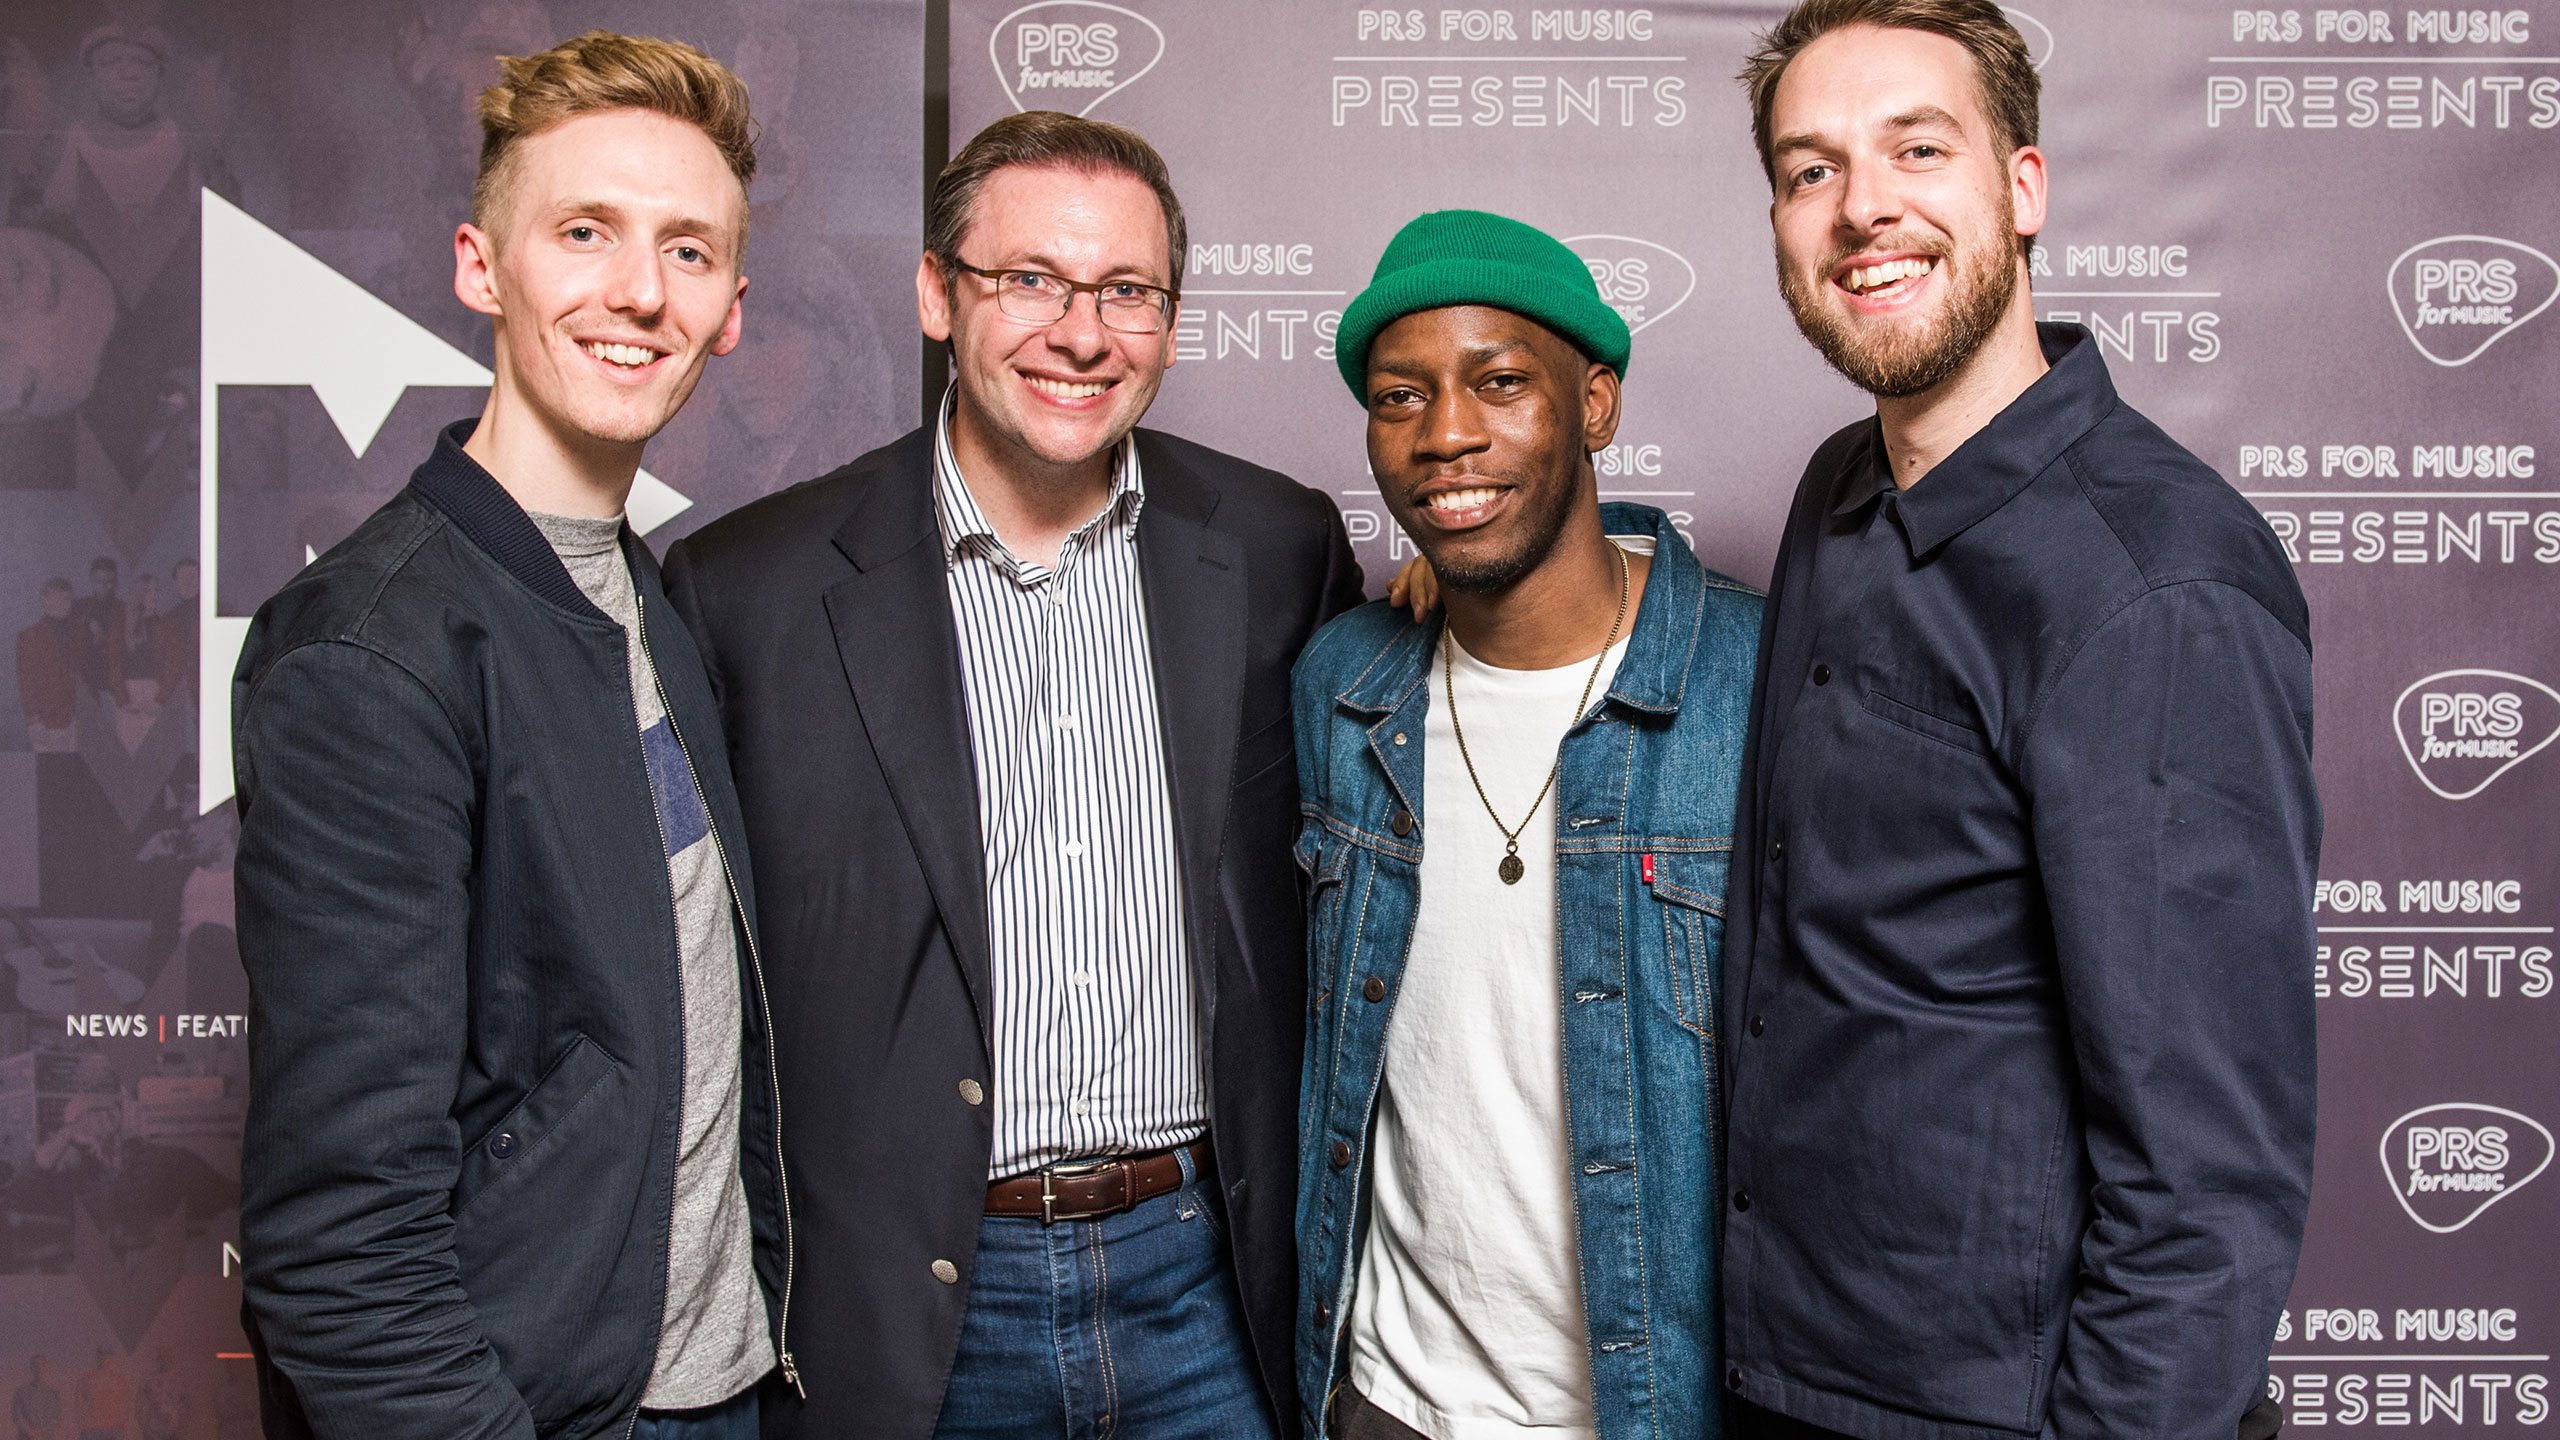 James Hatcher (Honne), Paul Clements (executive director of membership at PRS for Music), Tiggs Da Author and Andy Clutterbuck (Honne) at PRS Presents